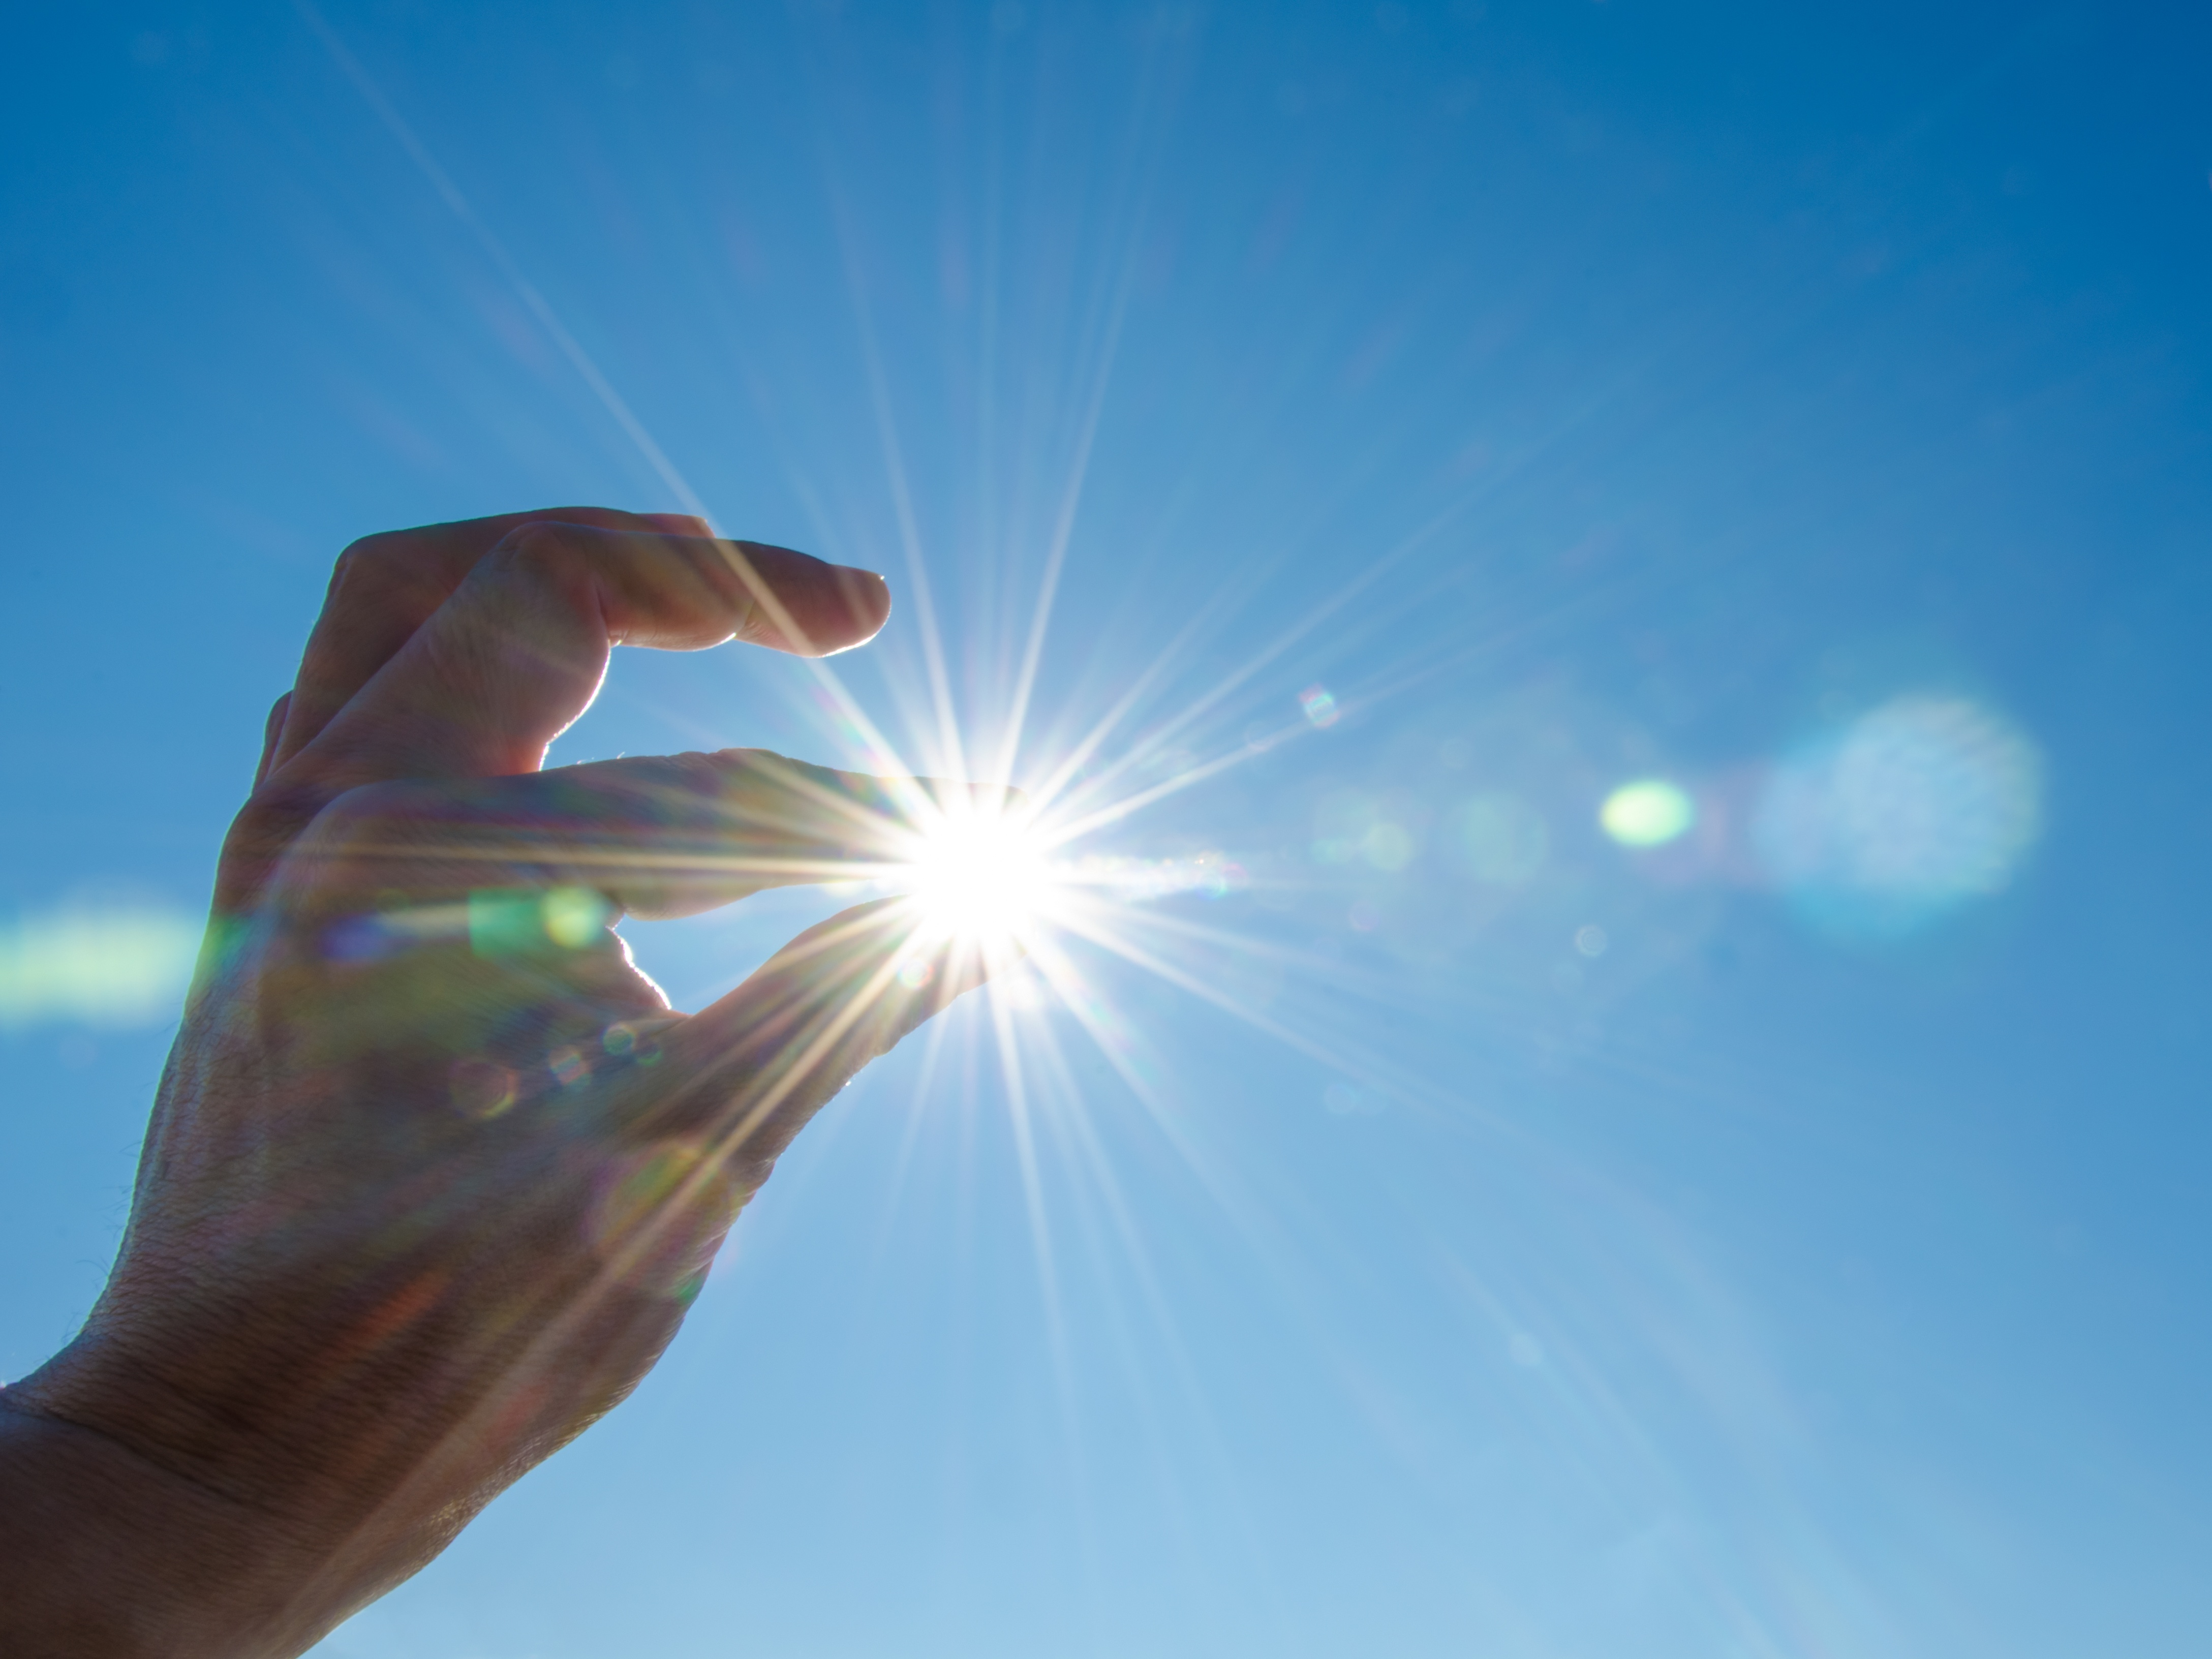 Harnessing sunshine: the power of solar